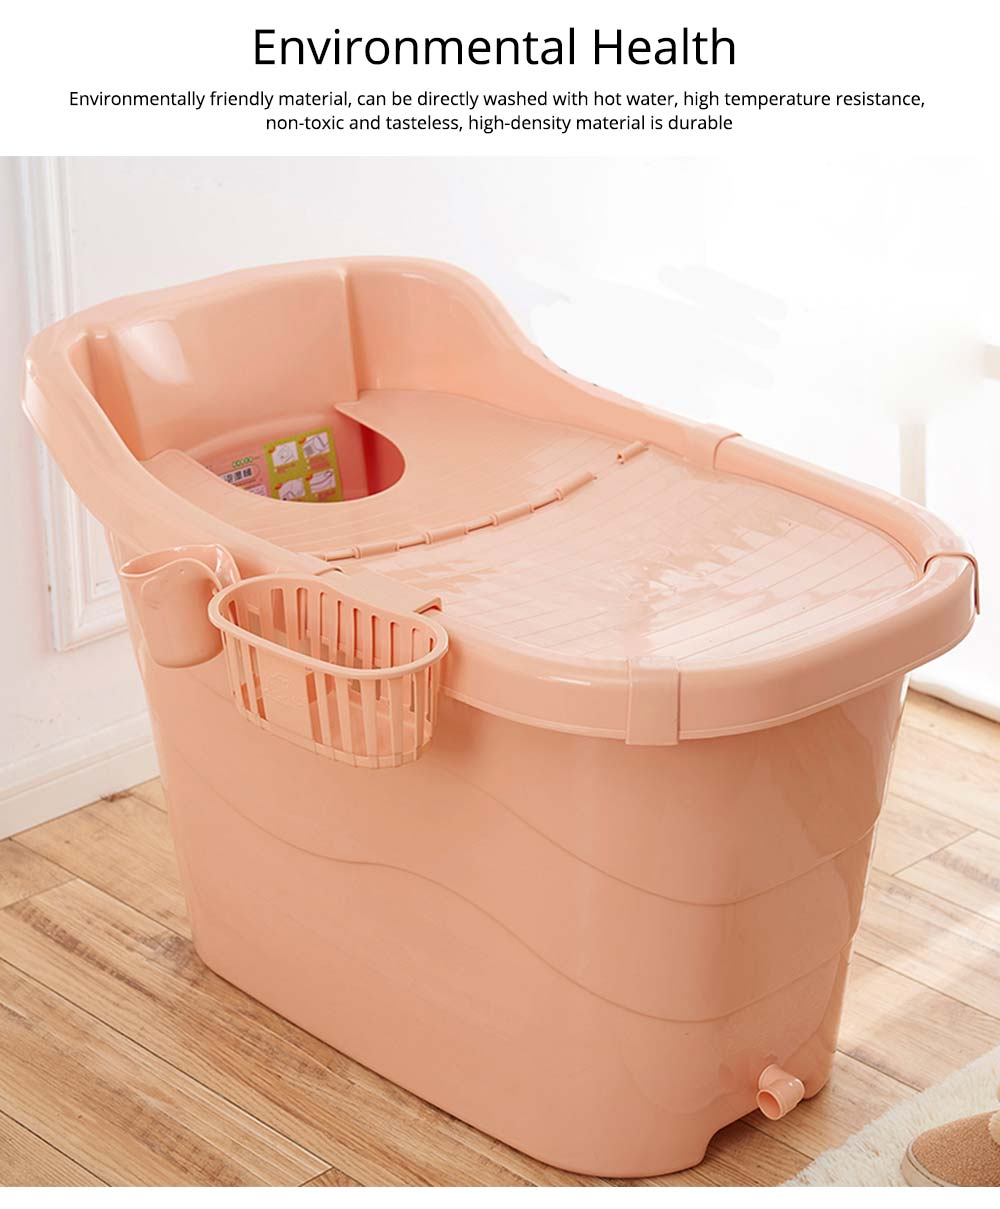 Thick Plastic Adult Bath Barrel, Children's Home Bath Barrel, Adult Body Oversized Bath Tub 5